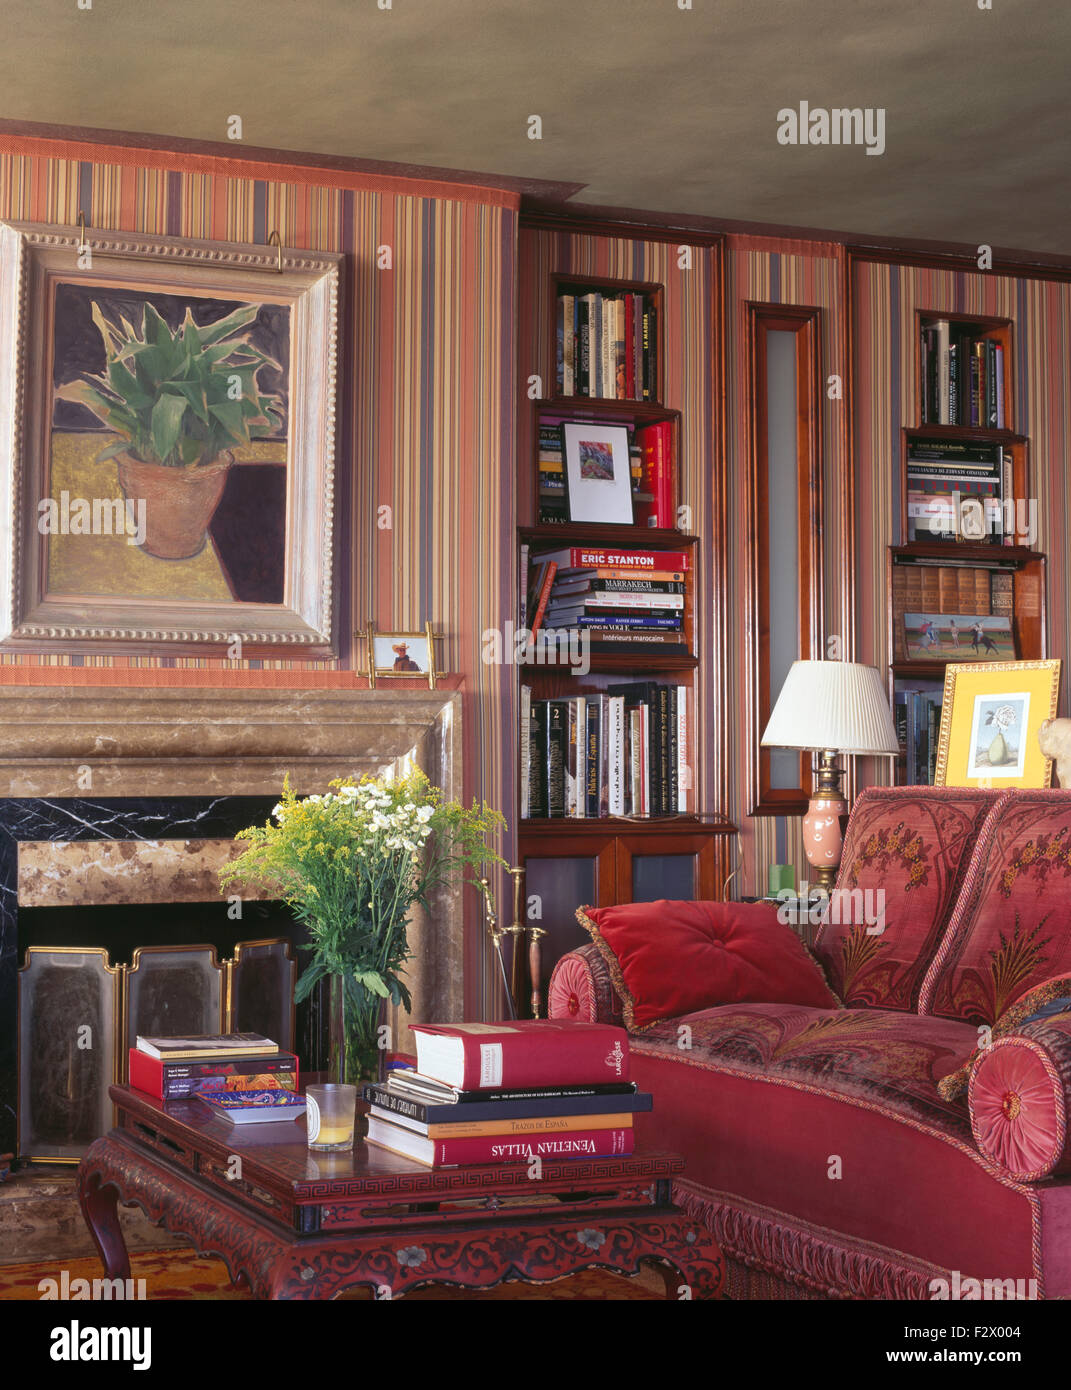 Hardback Books On Coffee Table Beside Fireplace And Red Sofa In Spanish  Living Room With Striped Wallpaper